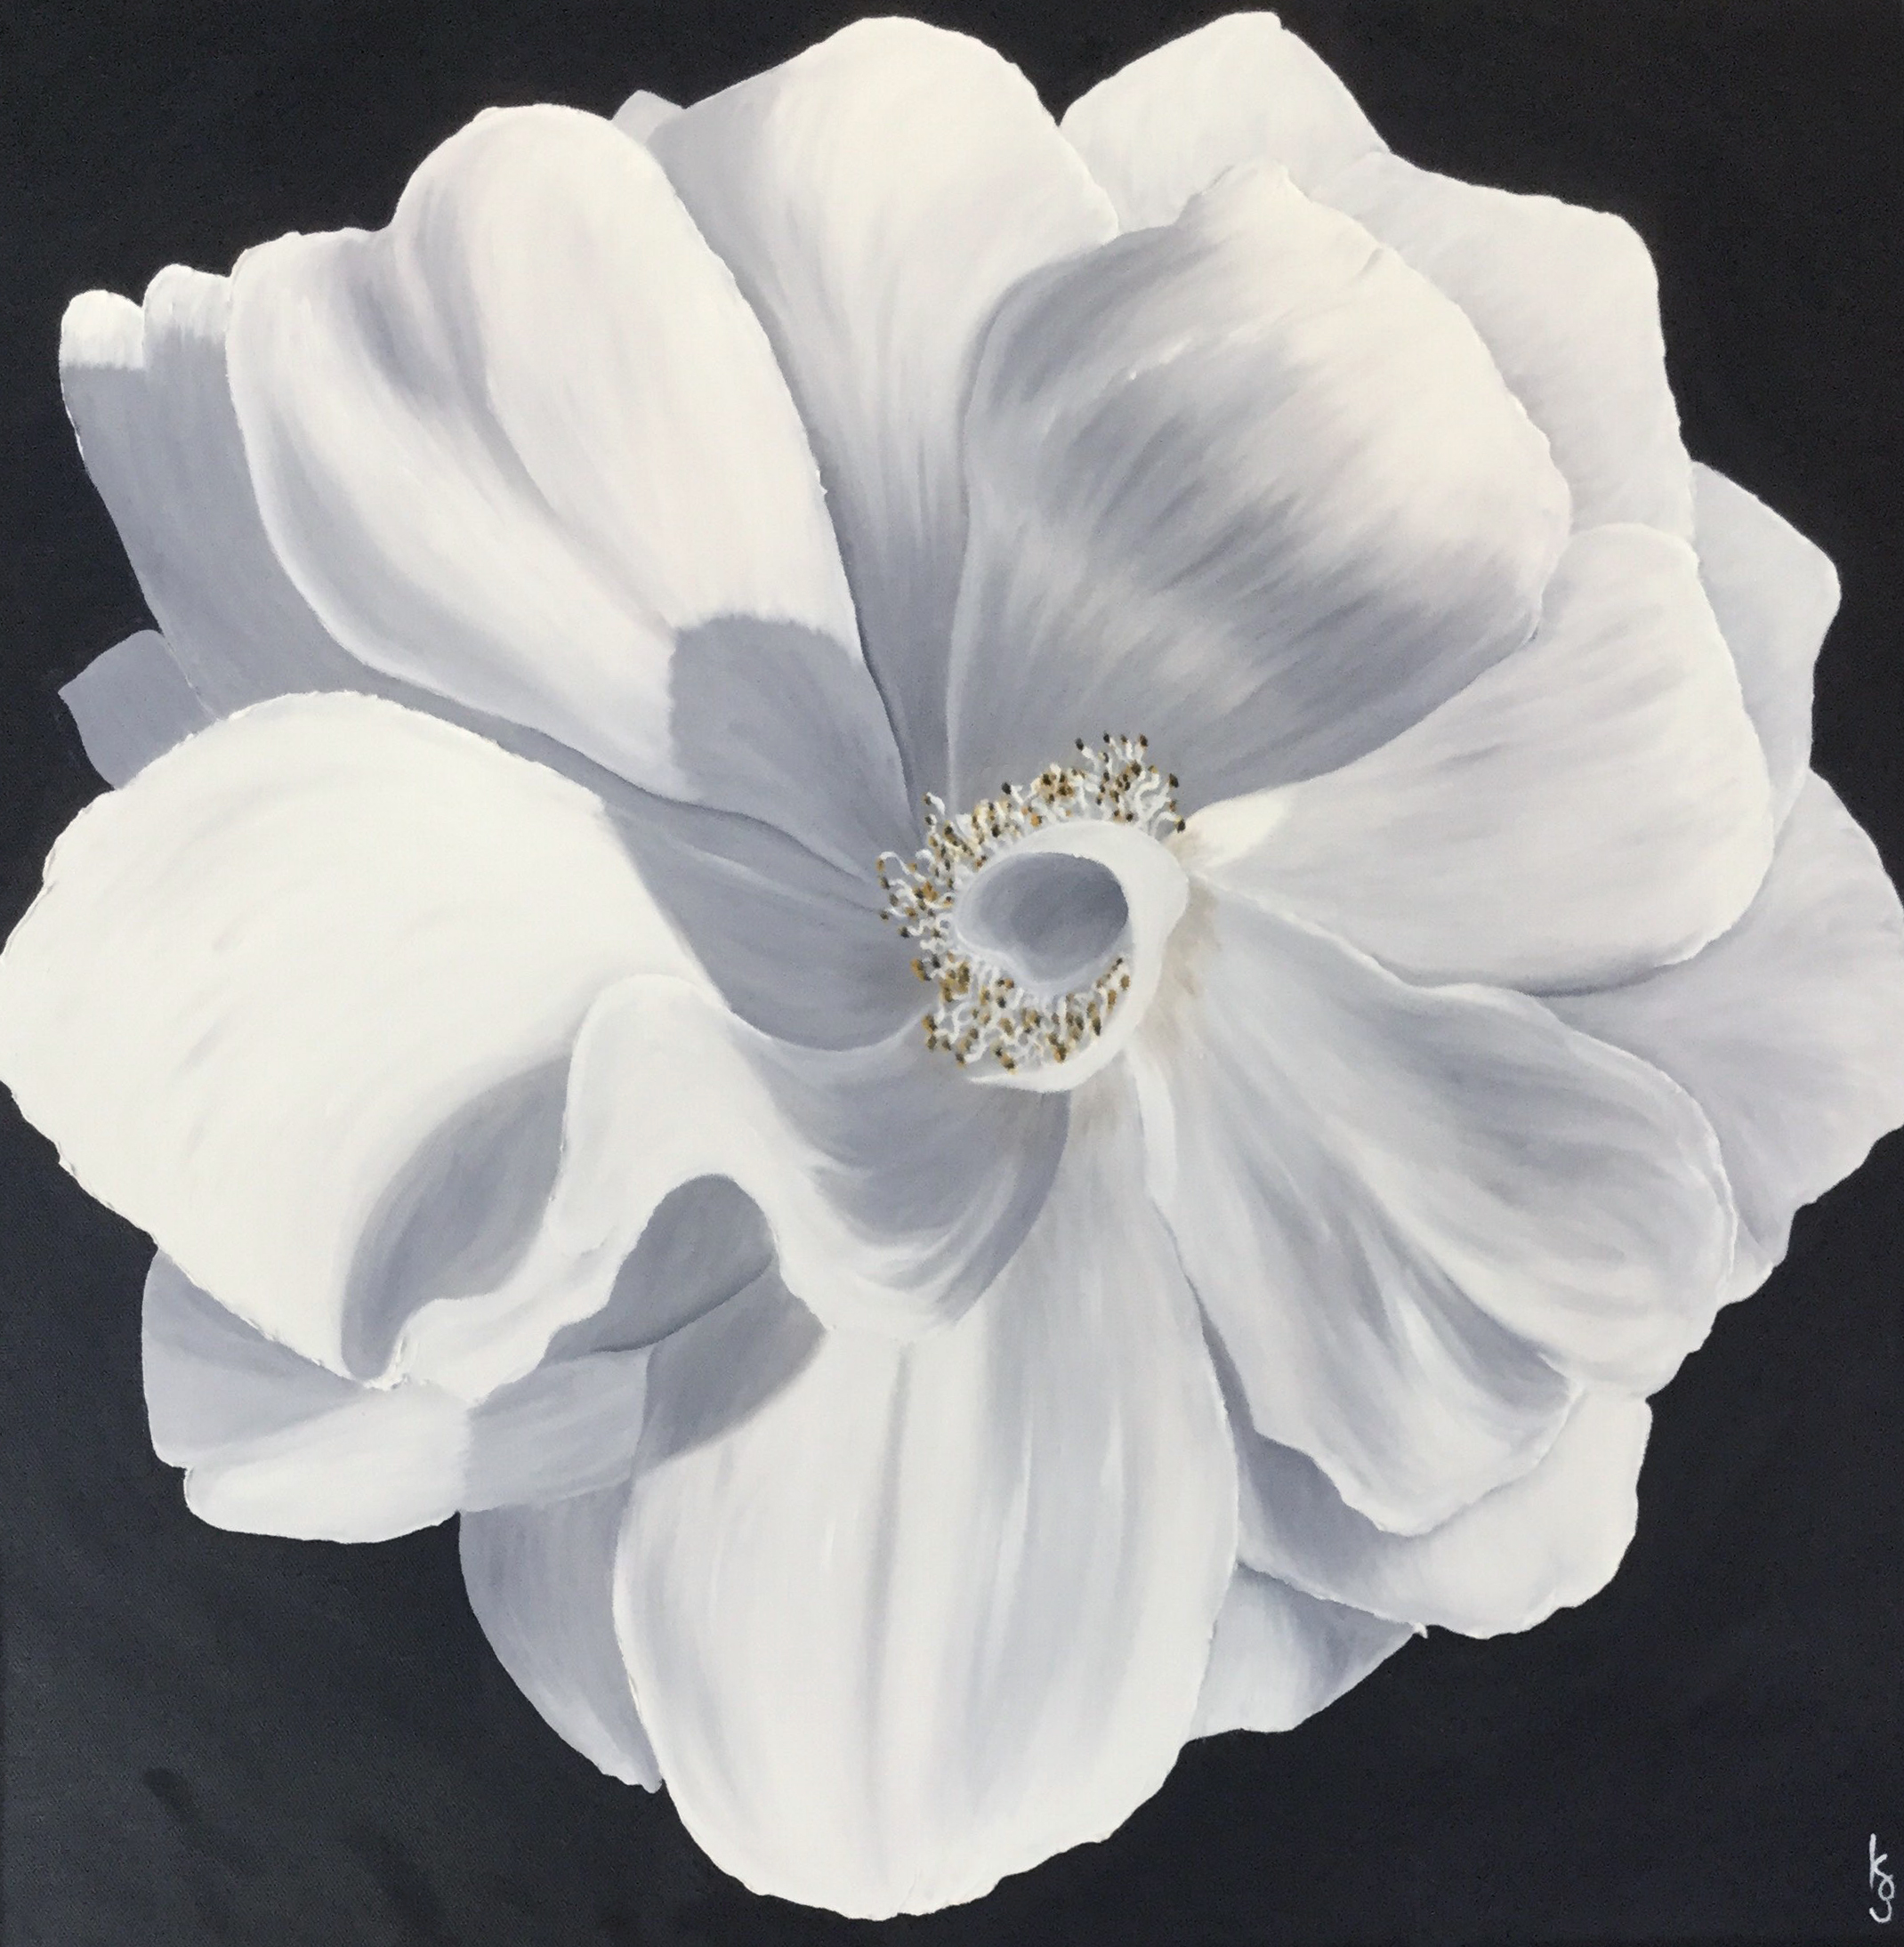 White Wood Rose  2017 Oil on canvas 24 x 24 inches